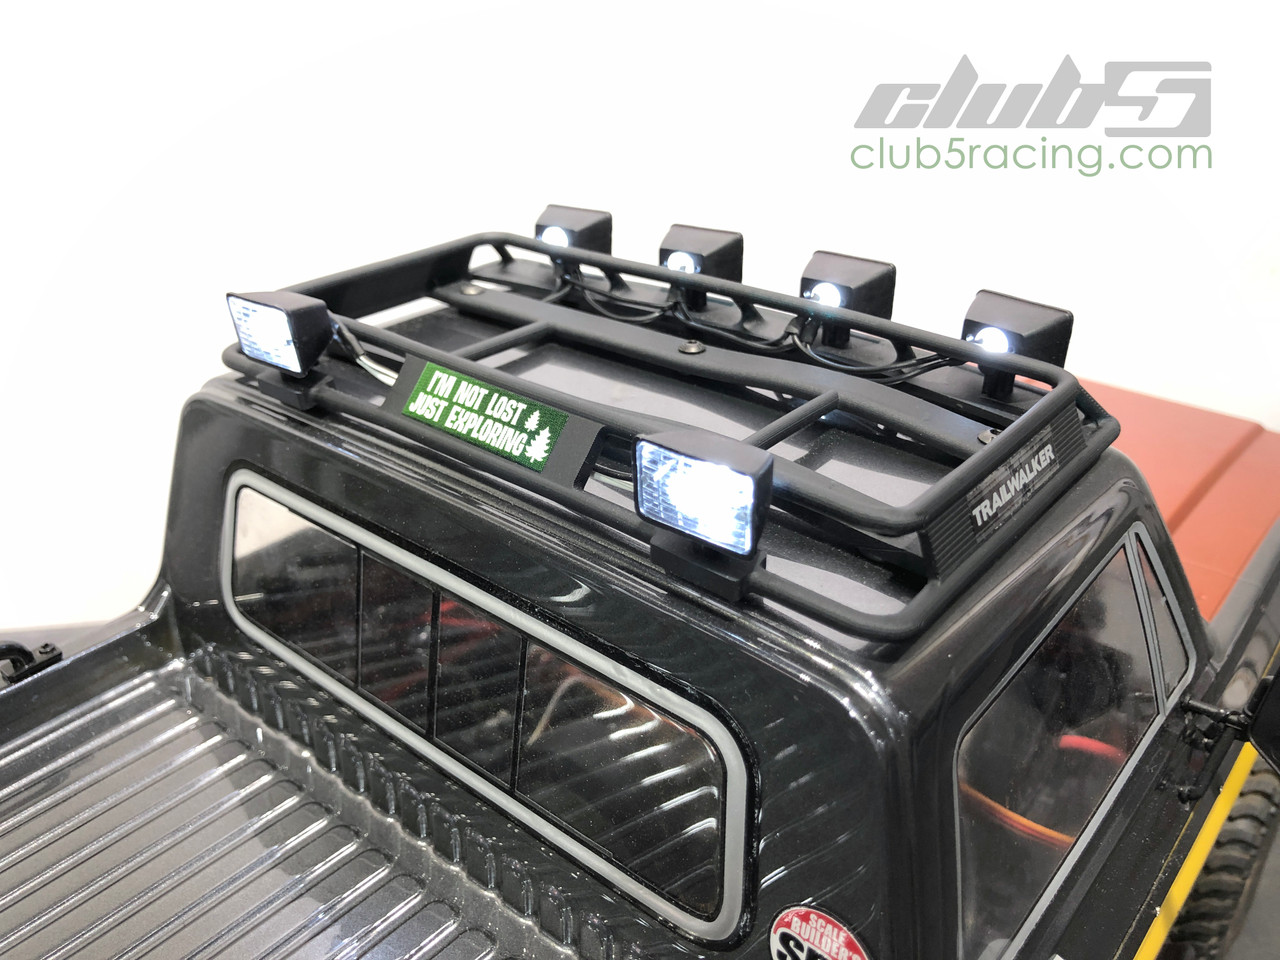 Roof Rack w/ Utility Light Bucket ( front x 4 / Rear x 2 ) for Element Enduro Trailwalker